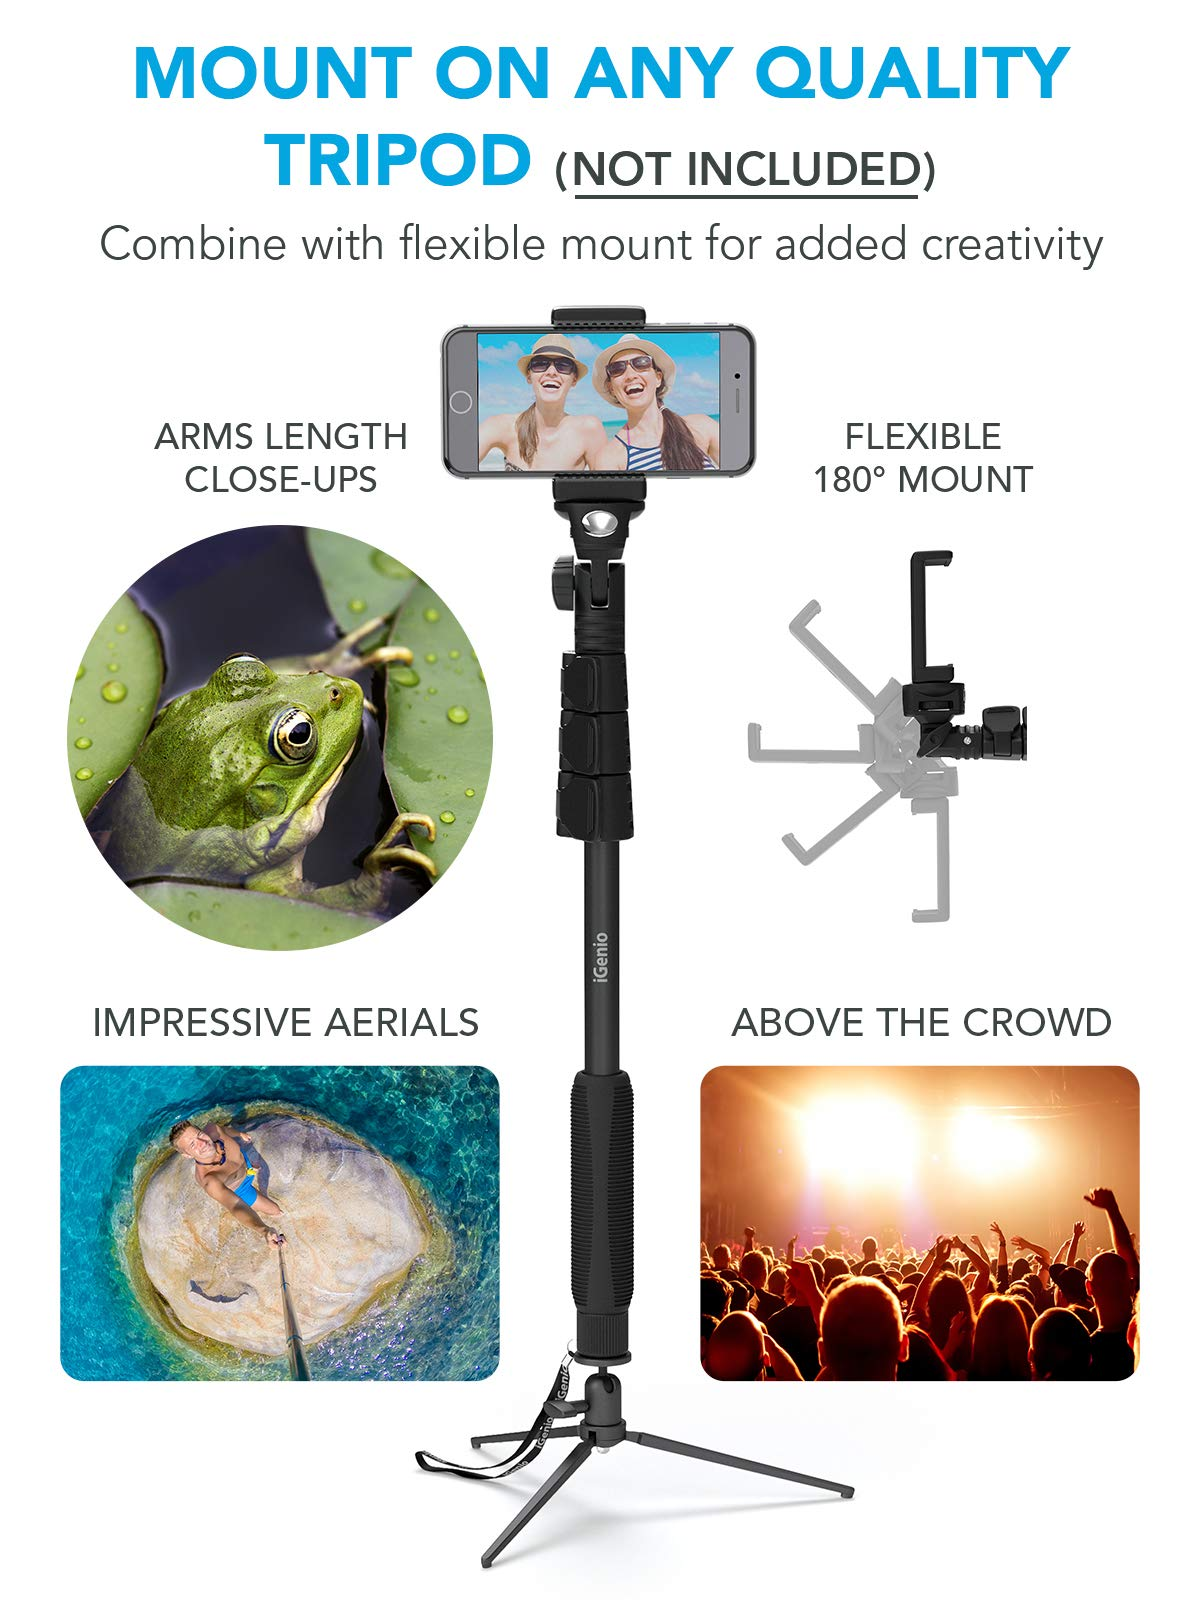 Professional 10-in-1 Monopod Selfie Stick for All GoPro Hero, Action Cameras, Cellphones, Digital Compacts with Bluetooth Remote Shutter - Extends 15''- 47'', Weatherproof Shockproof - Take It Anywhere by Selfie World (Image #6)